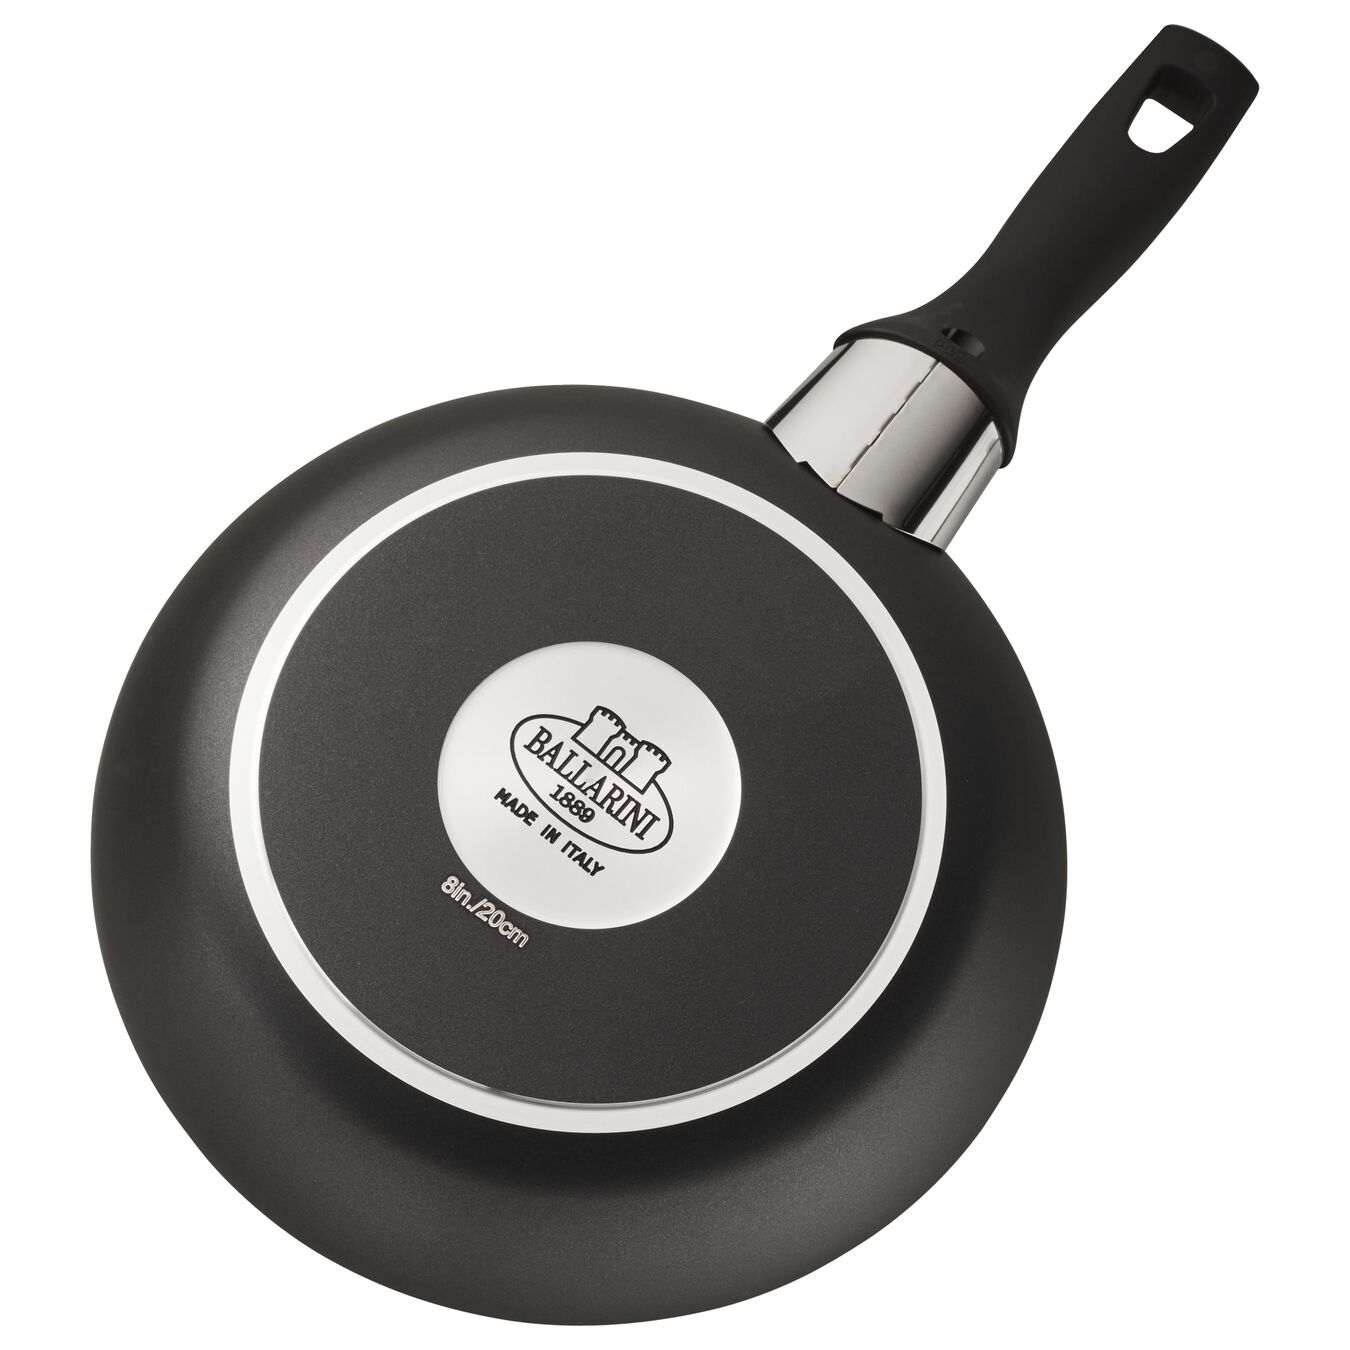 8-inch Nonstick Fry Pan,,large 3